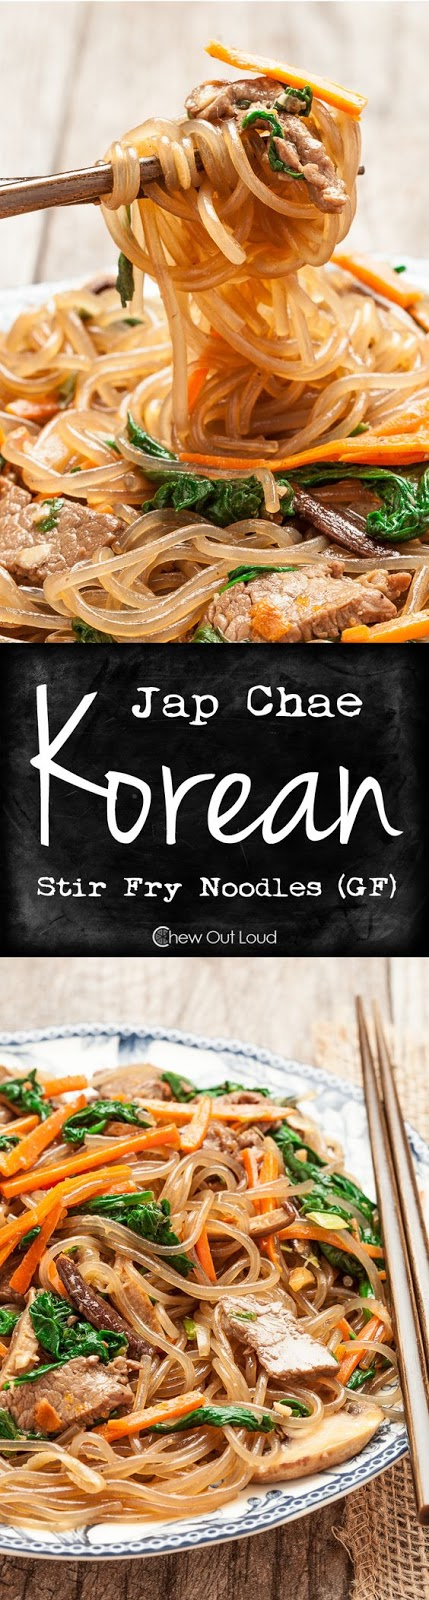 ★★★★☆ 7561 ratings | JAP CHAE (KOREAN STIR FRY NOODLES – GF) #HEALTHYFOOD #EASYRECIPES #DINNER #LAUCH #DELICIOUS #EASY #HOLIDAYS #RECIPE #JAP #CHAE #KOREAN #STIR #FRY #NOODLES